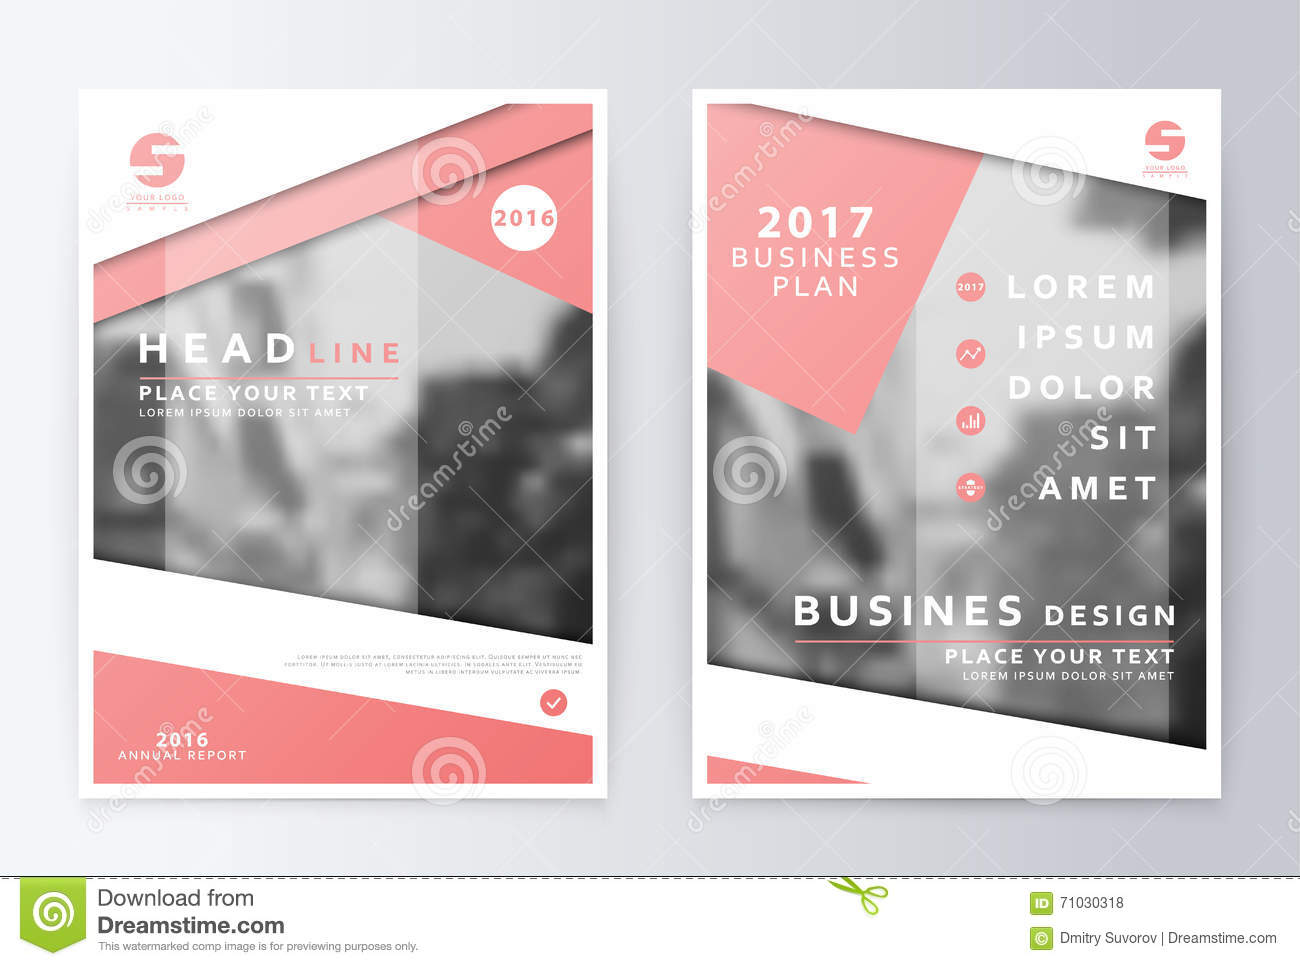 Graphic design business plan template choice image business cards free graphic design business plan template contoh essay bi pt3 free graphic design business plan template friedricerecipe Images